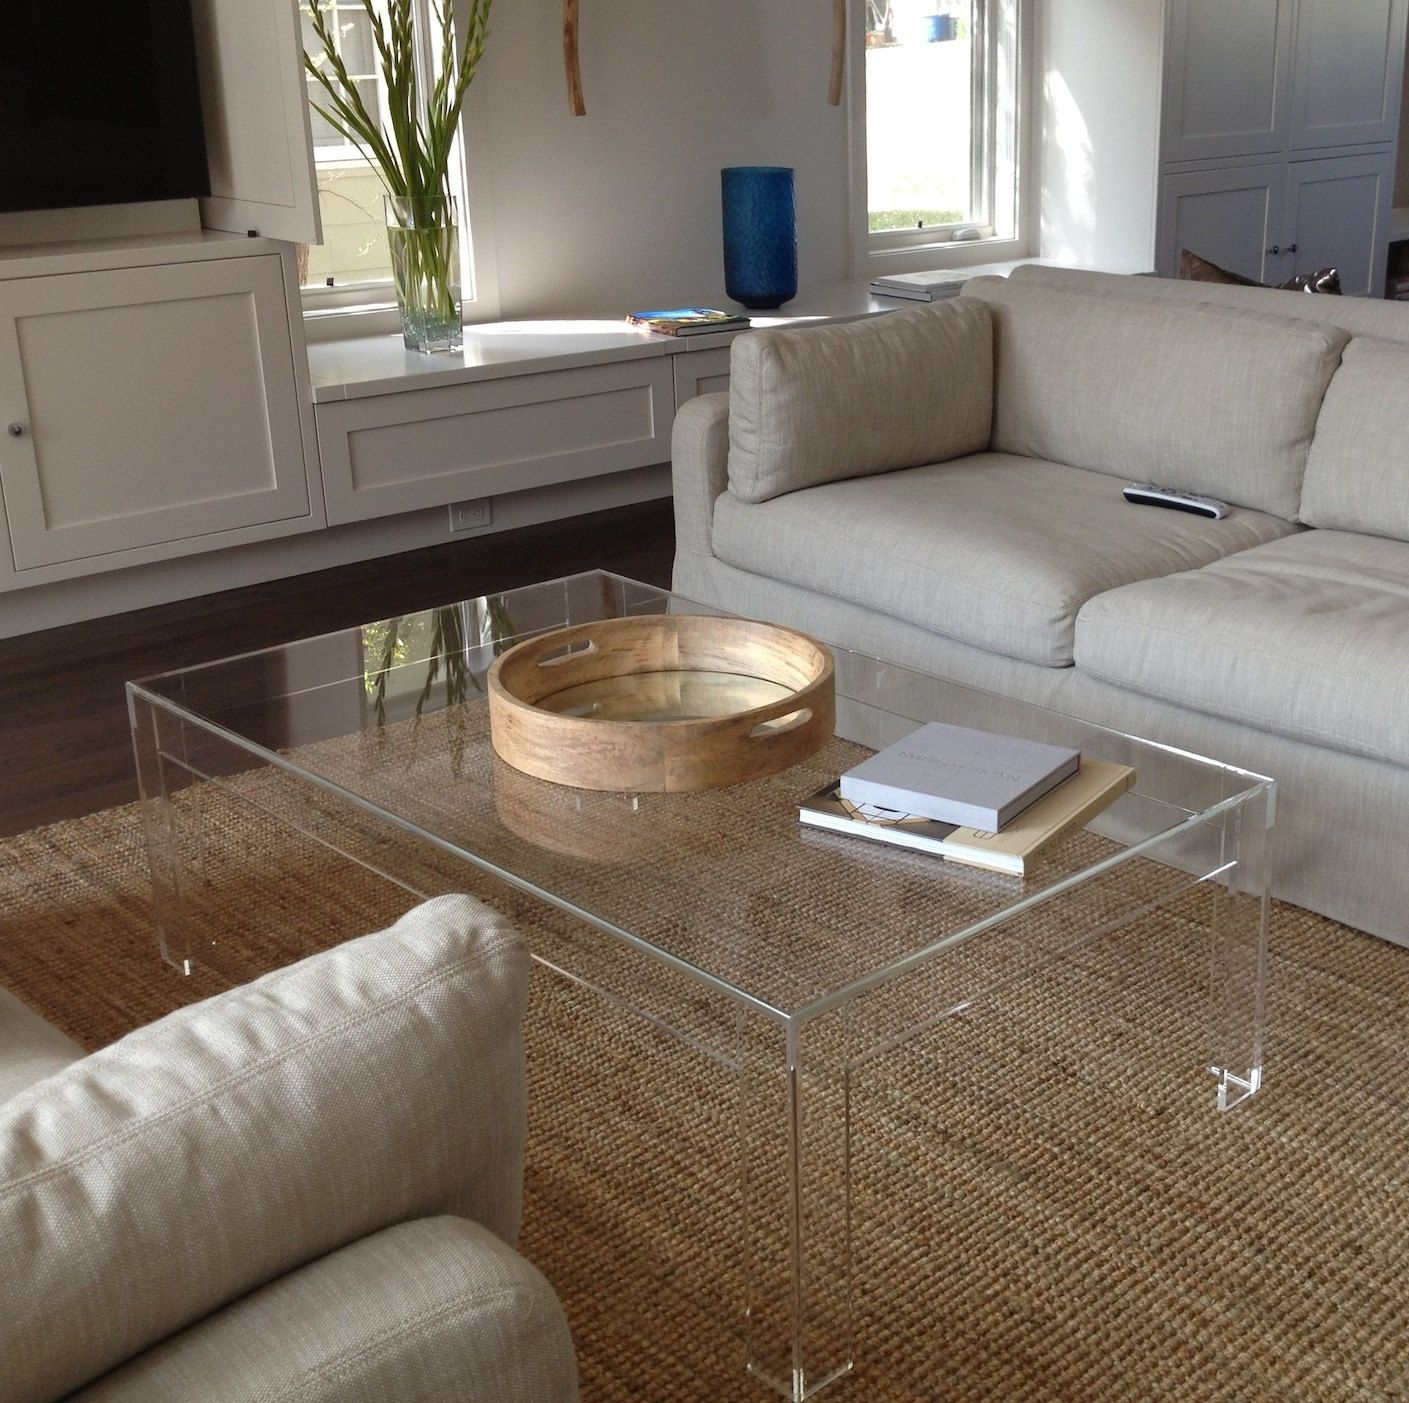 Clear Acrylic Coffee Table | diy furniture | Pinterest ...